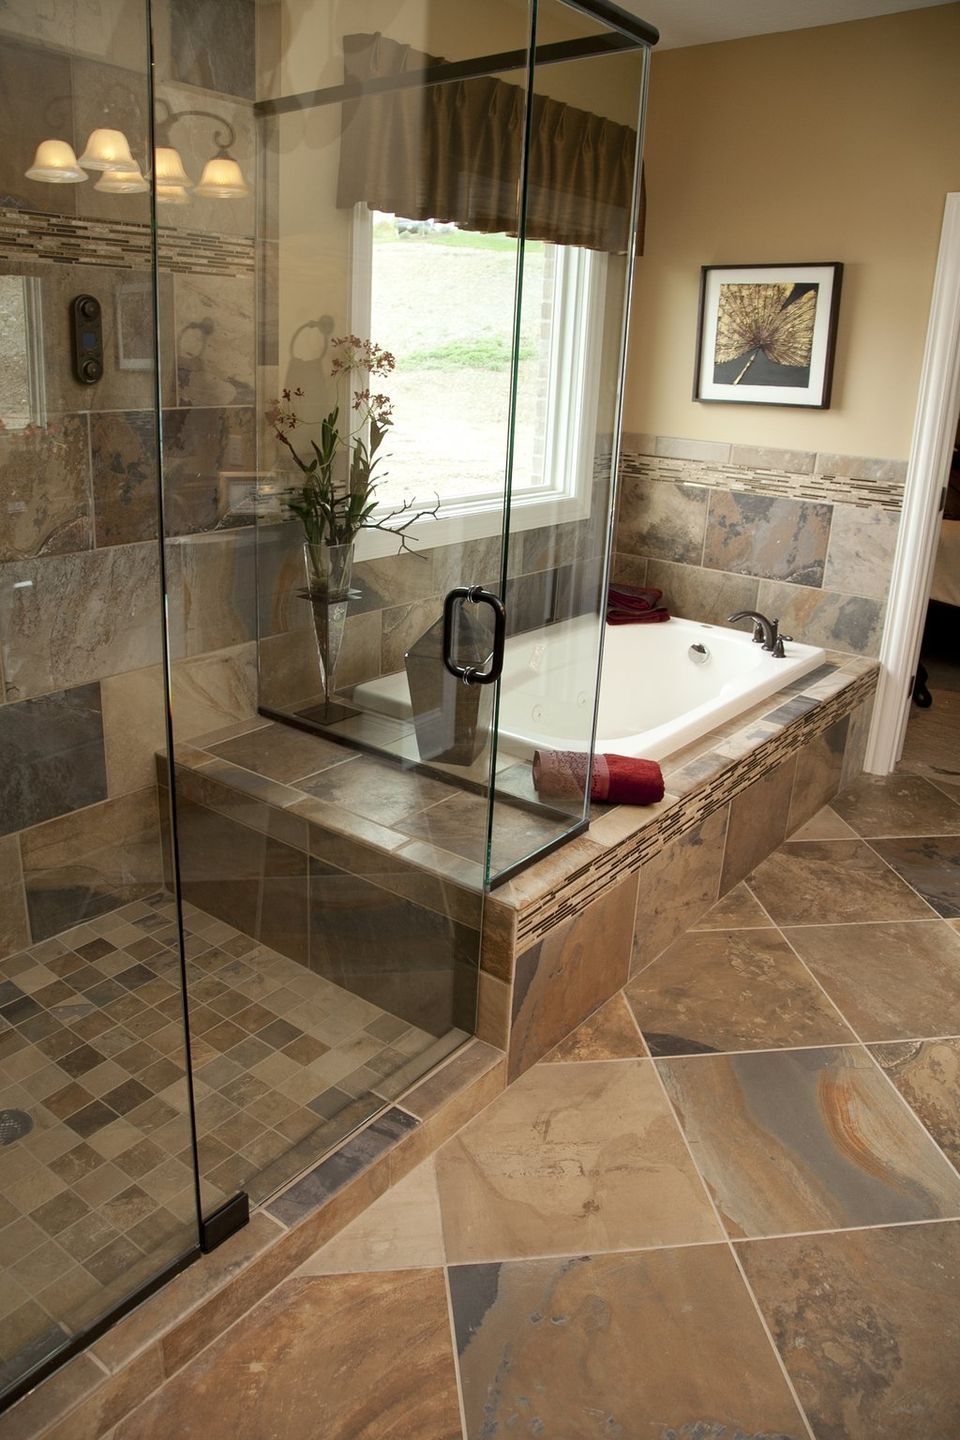 33 stunning pictures and ideas of natural stone bathroom ... on Bathroom Tile Designs  id=76714